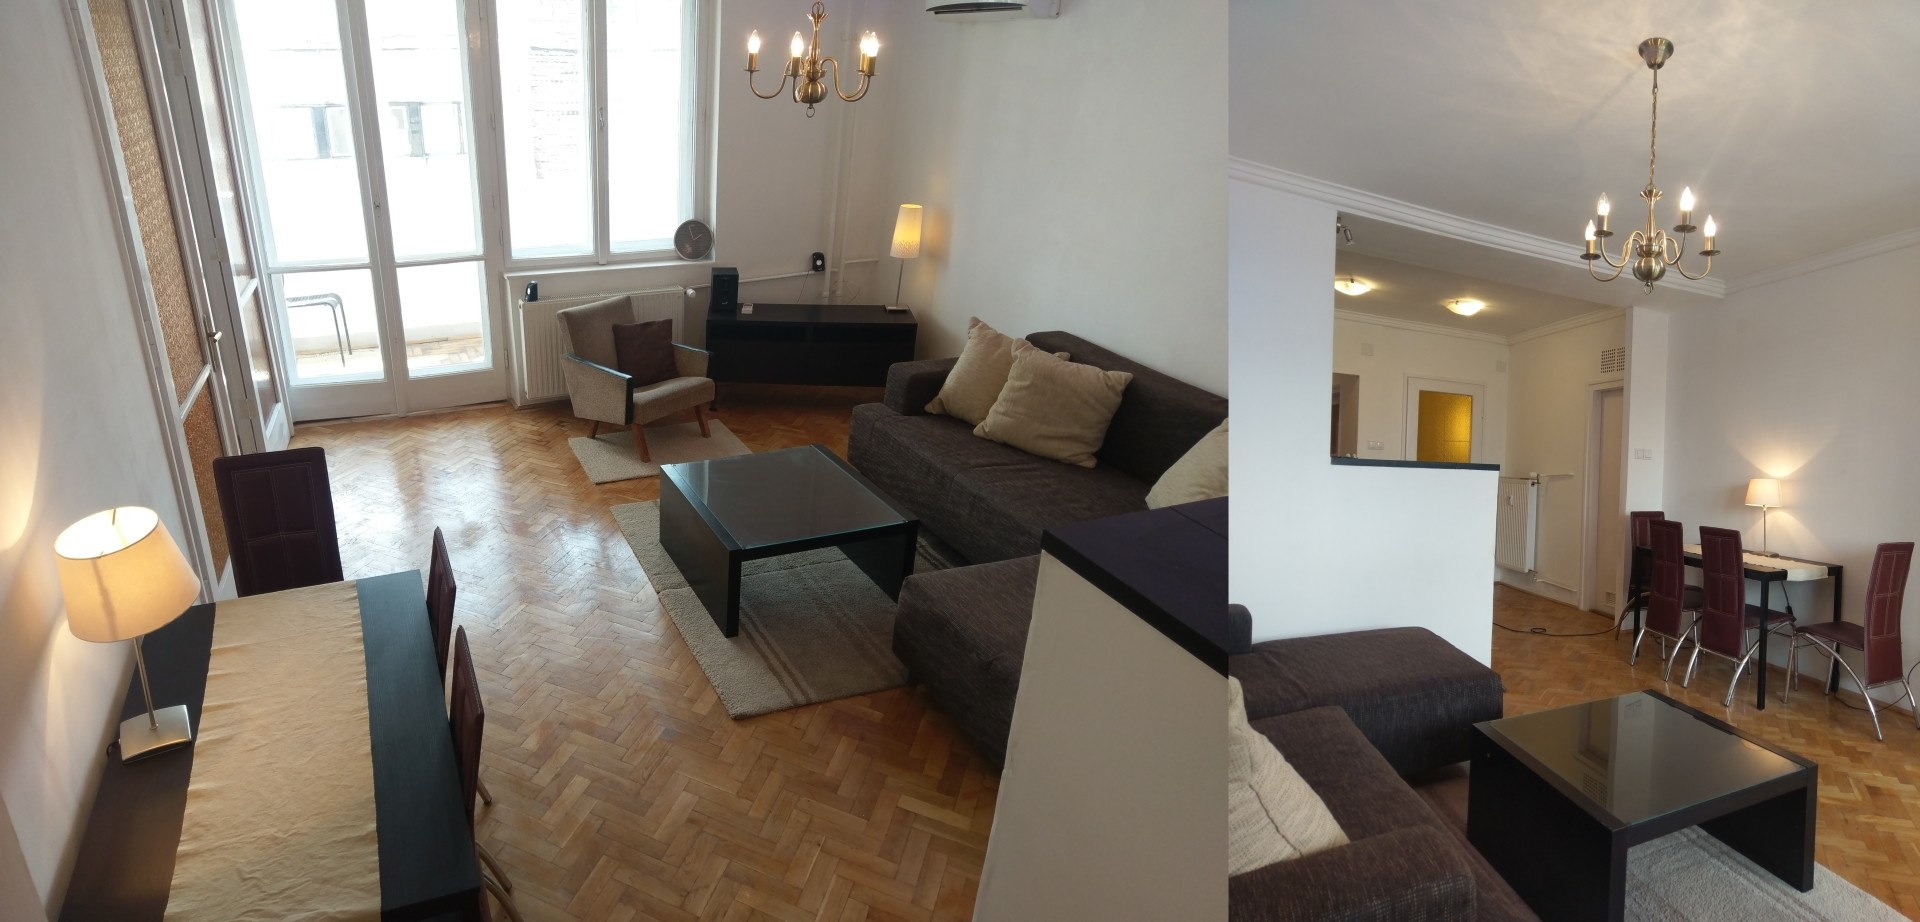 Modern Flat In Retro Style Condo Budapest Downtown Area Close To Everything